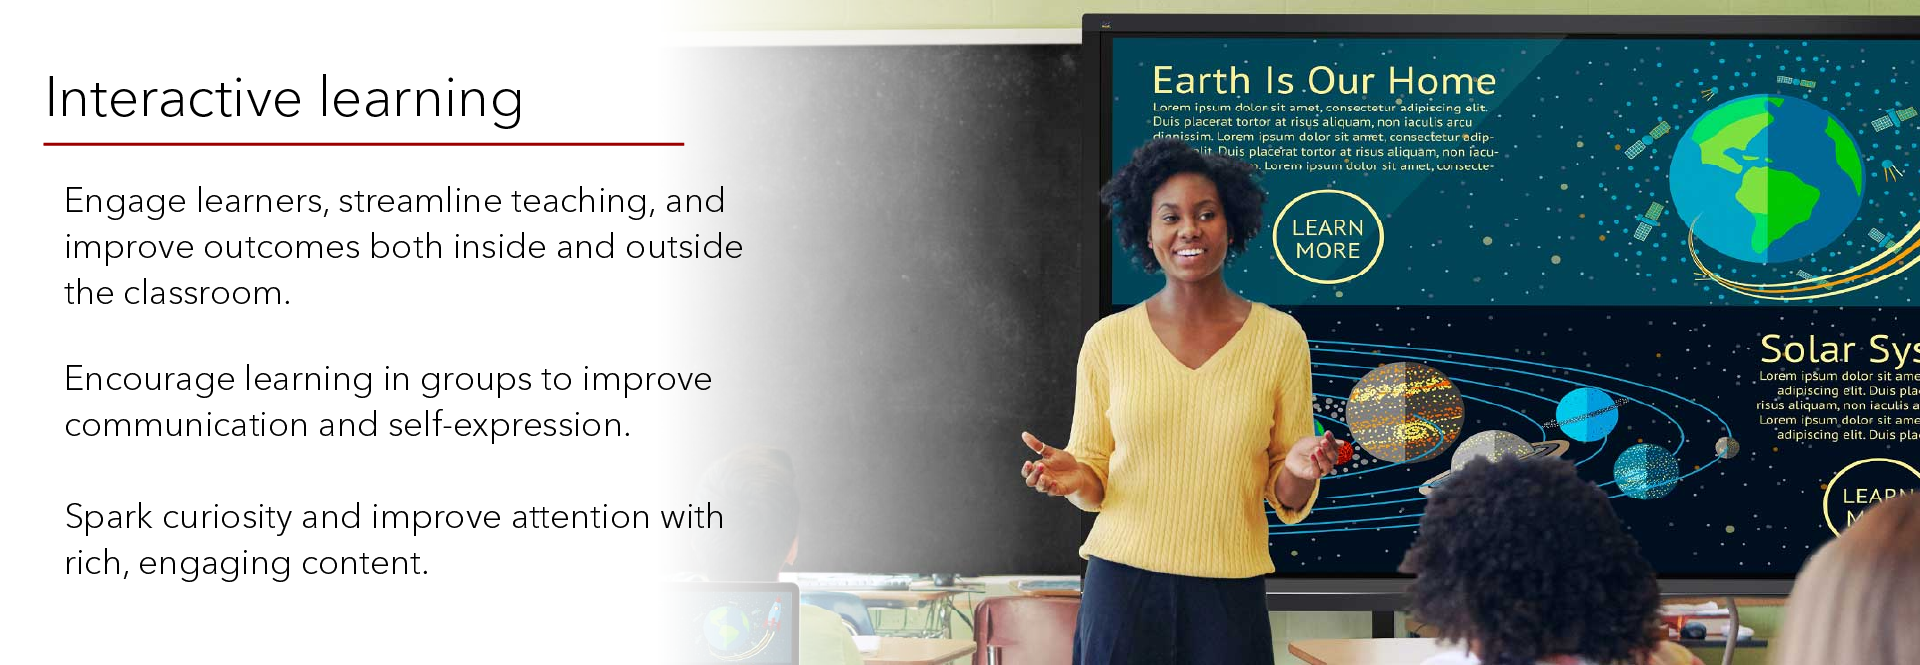 ViewBoard - Interactive learning by engaging students with rich content, and collaboration in the classroom | Kaira Global